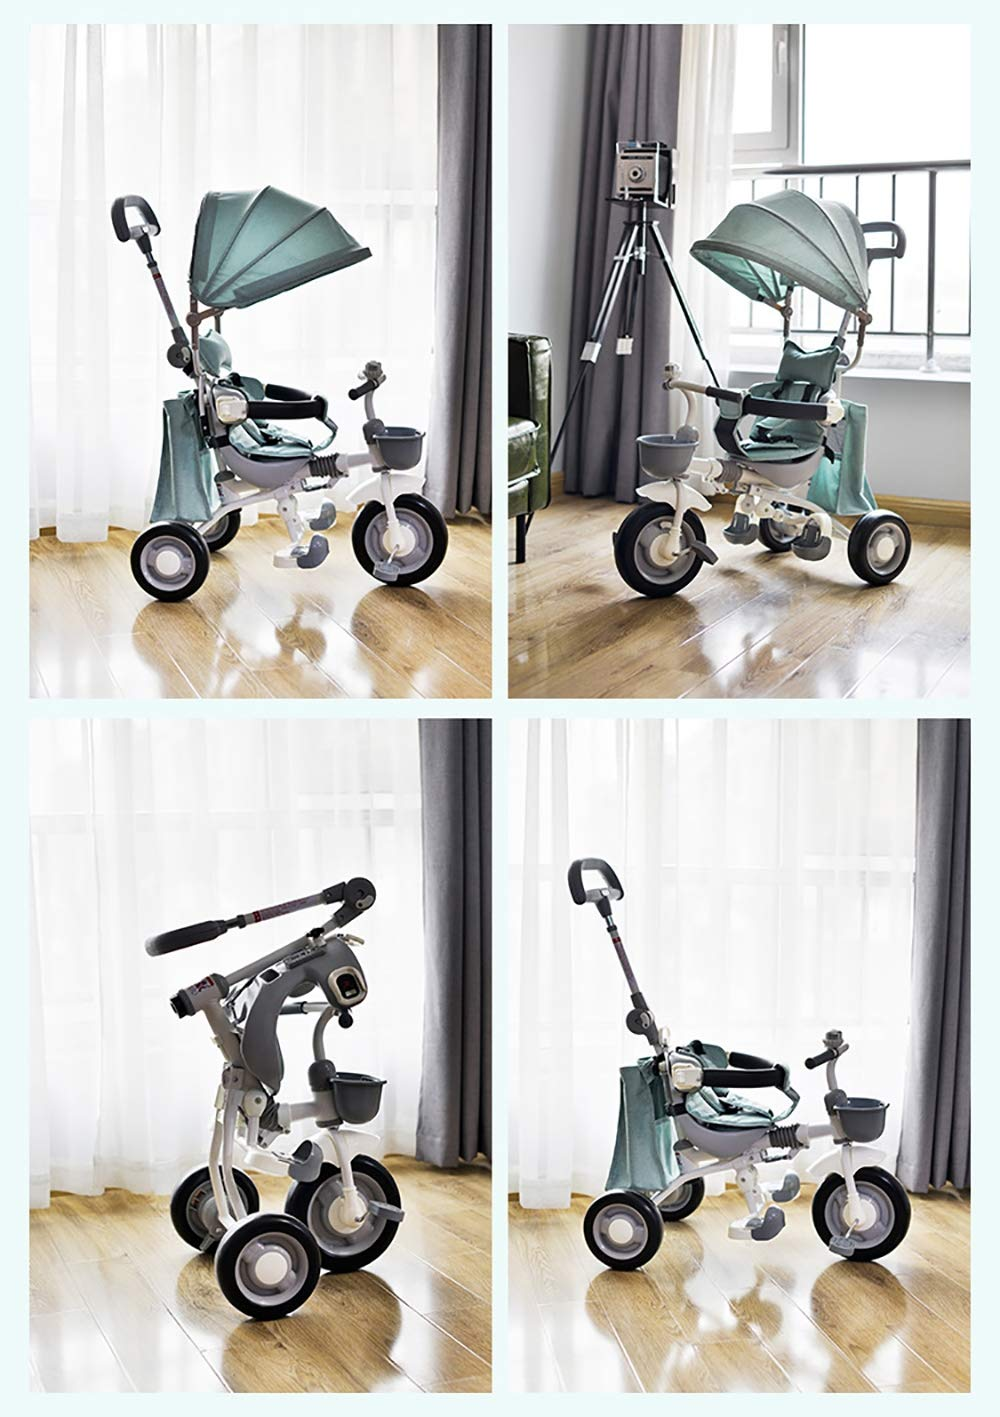 Sunzy Baby hand push tricycle, lightweight folding portable children's tricycle, suitable for children aged 1-4  The entire frame is painted with a paint to effectively prevent the frame from colliding and rusting. High-performance space wheel, SUV-level shock protection, suitable for all kinds of road surfaces, no inflation, no deformation. Linen awning, effectively blocking UV, breathable sunshade 8